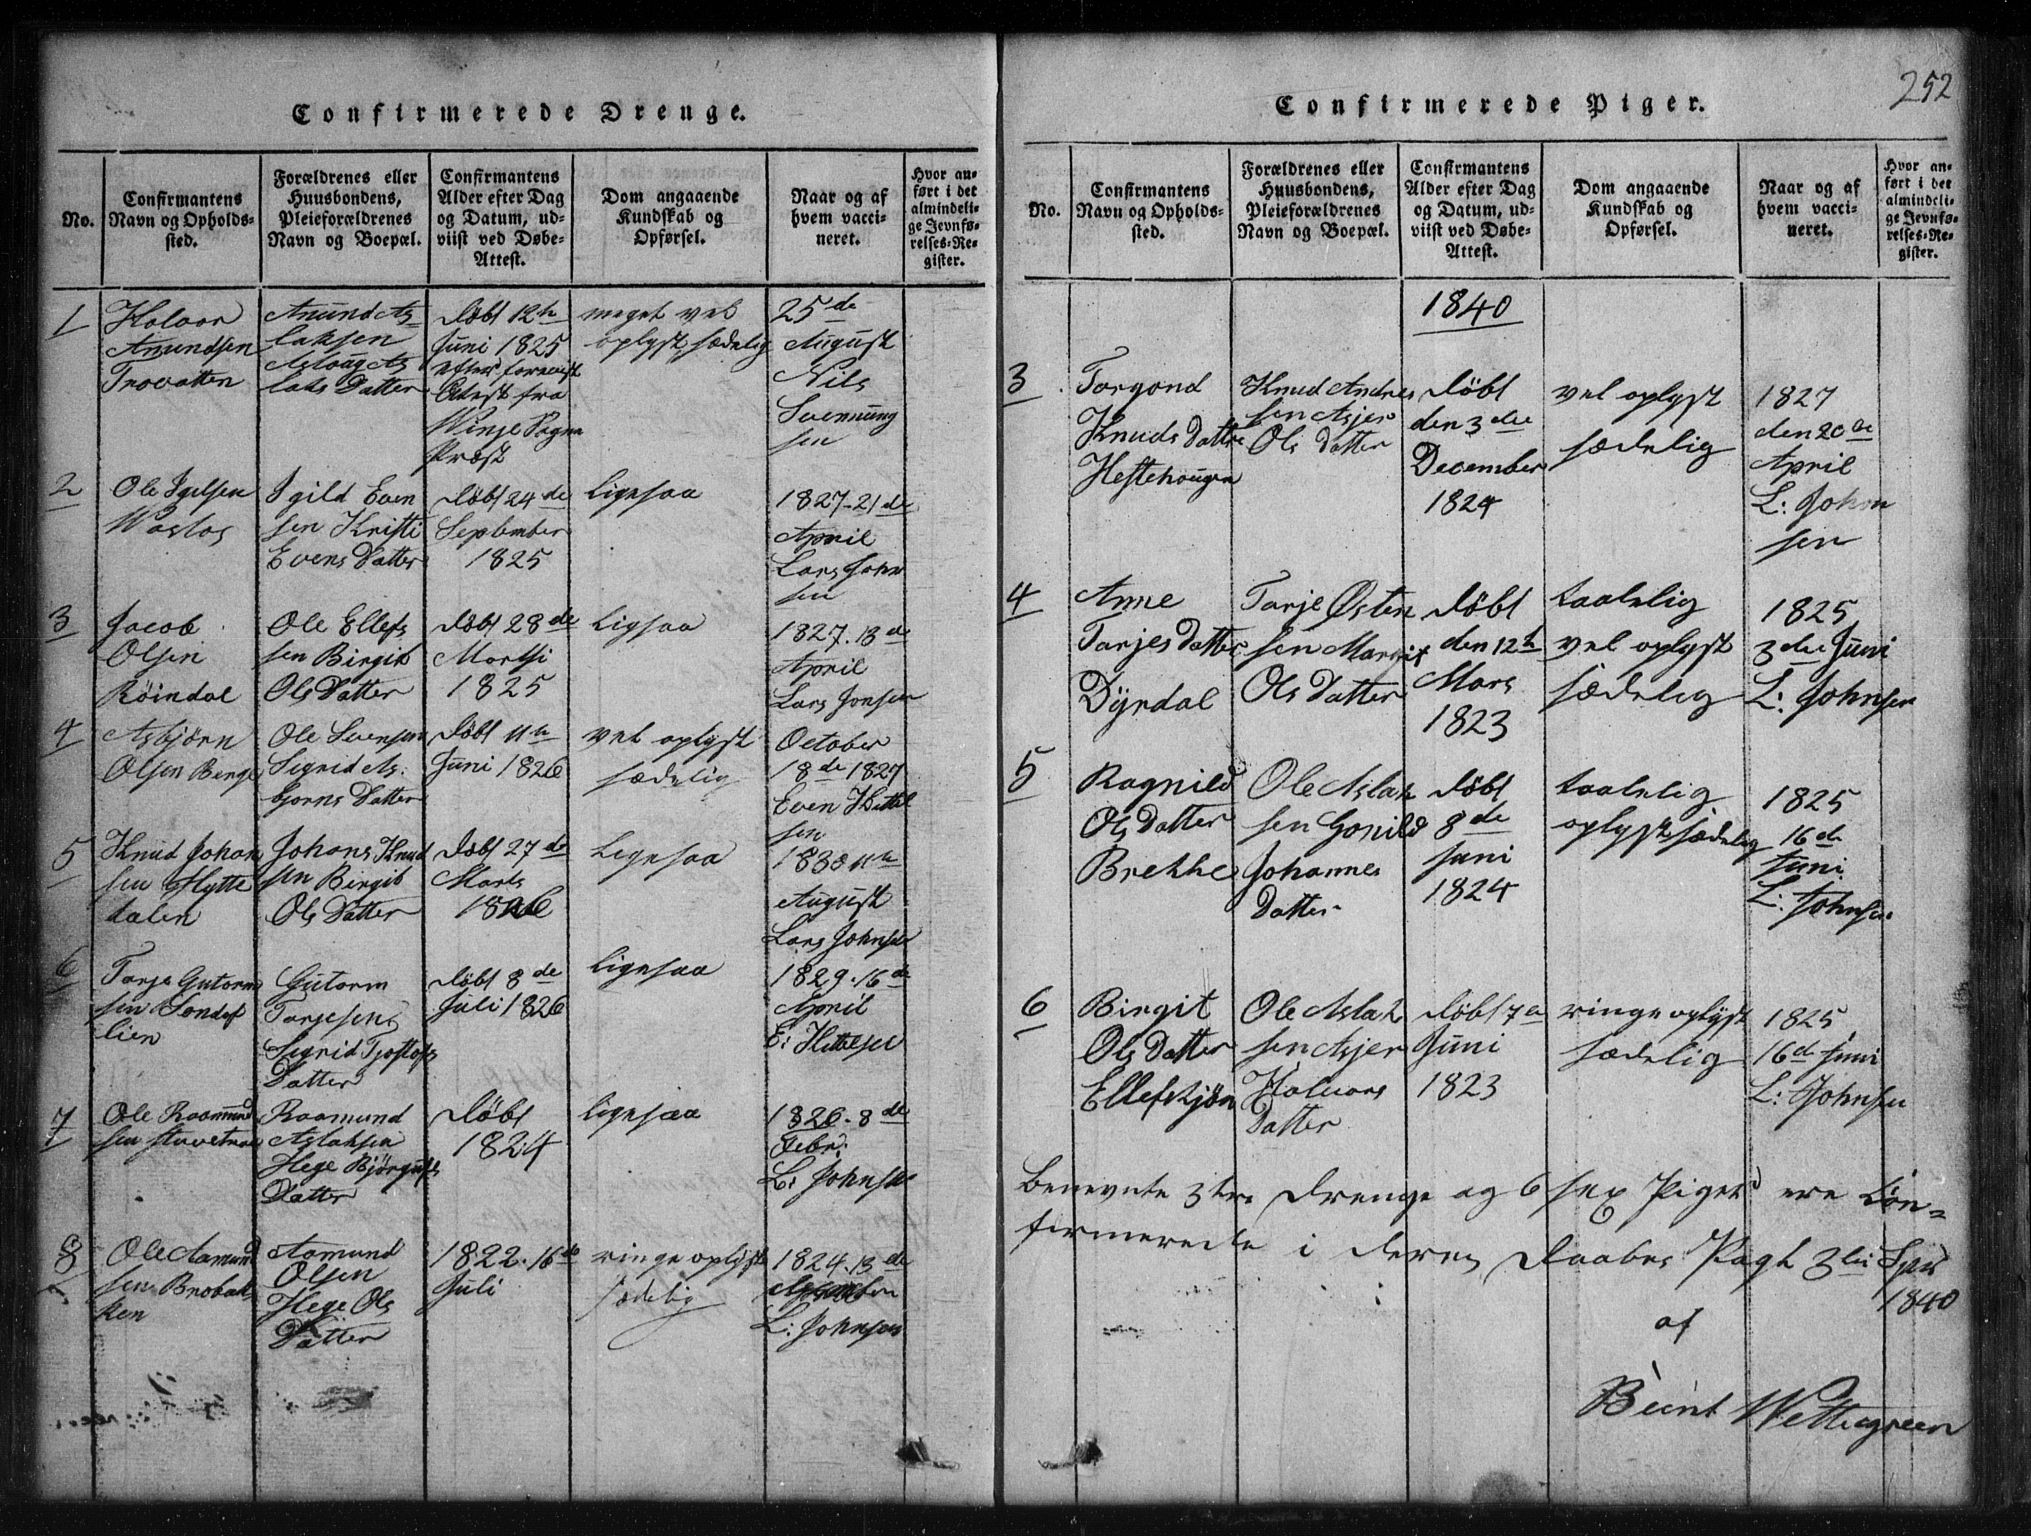 SAKO, Rauland kirkebøker, G/Gb/L0001: Parish register (copy) no. II 1, 1815-1886, p. 252